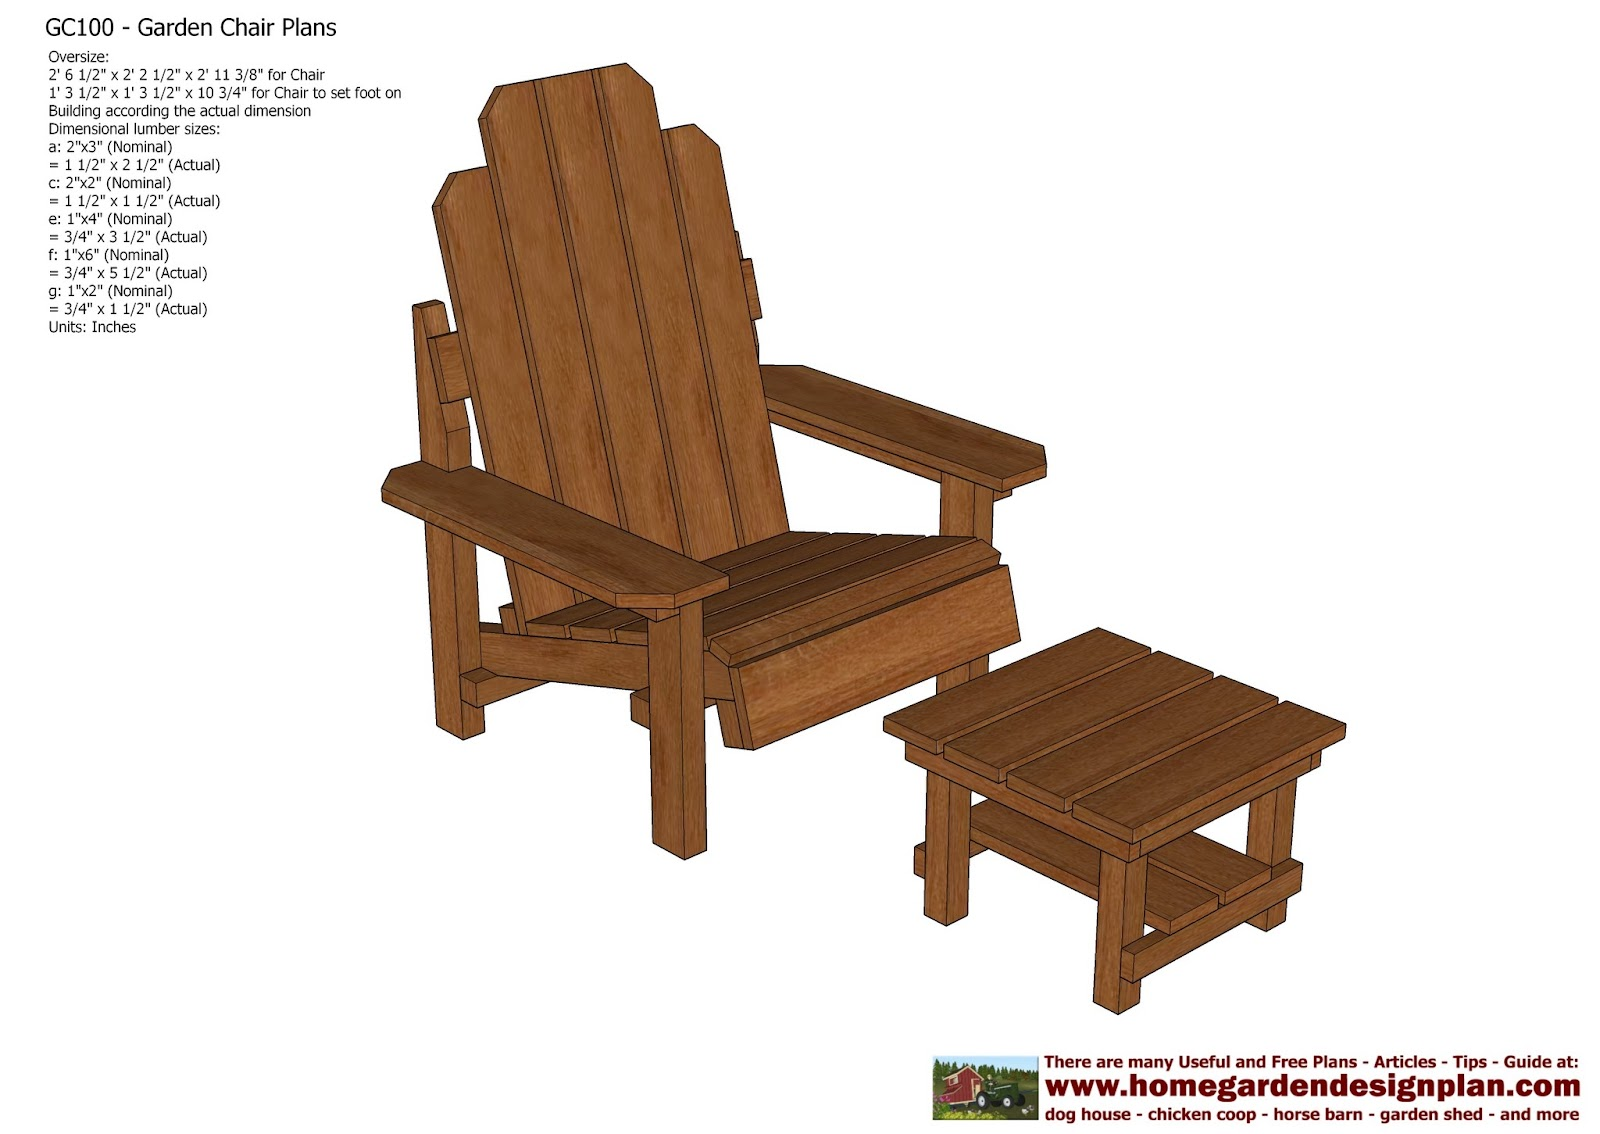 Outdoor wood furniture plans design ideas